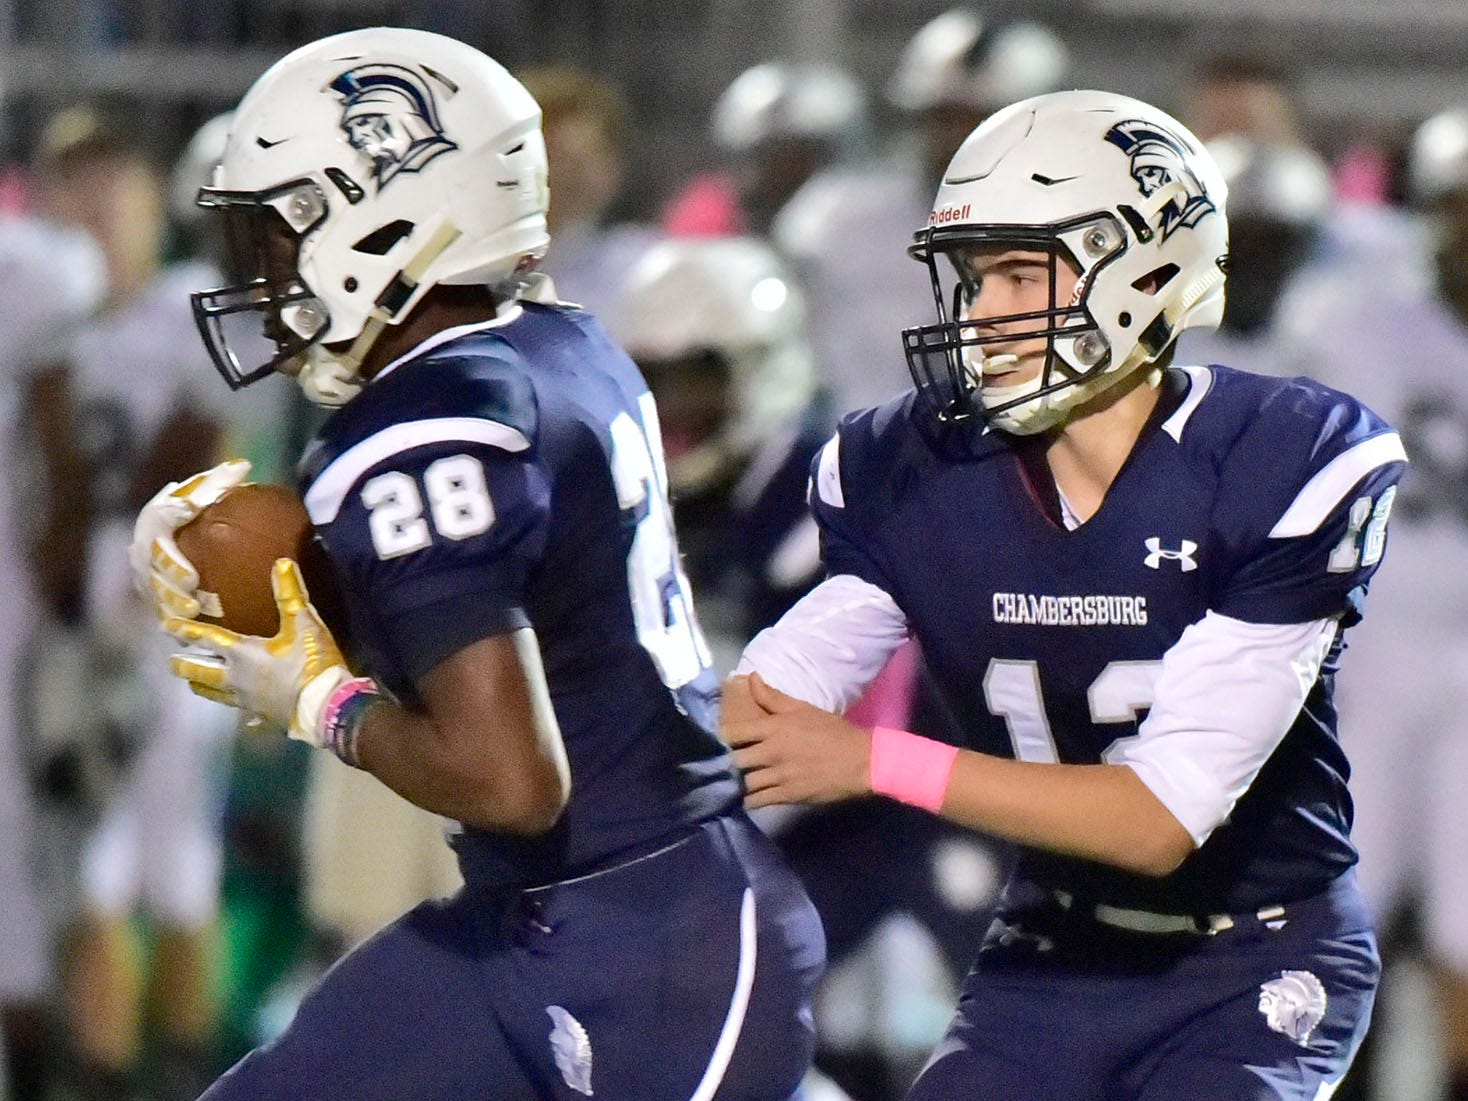 Chambersburg's Keyshawn Jones (28)  carries the ball after a handoff from Brady Stumbaugh. Chambersburg lost to Central Dauphin 35-14 in PIAA football on Friday, Oct. 19, 2018.